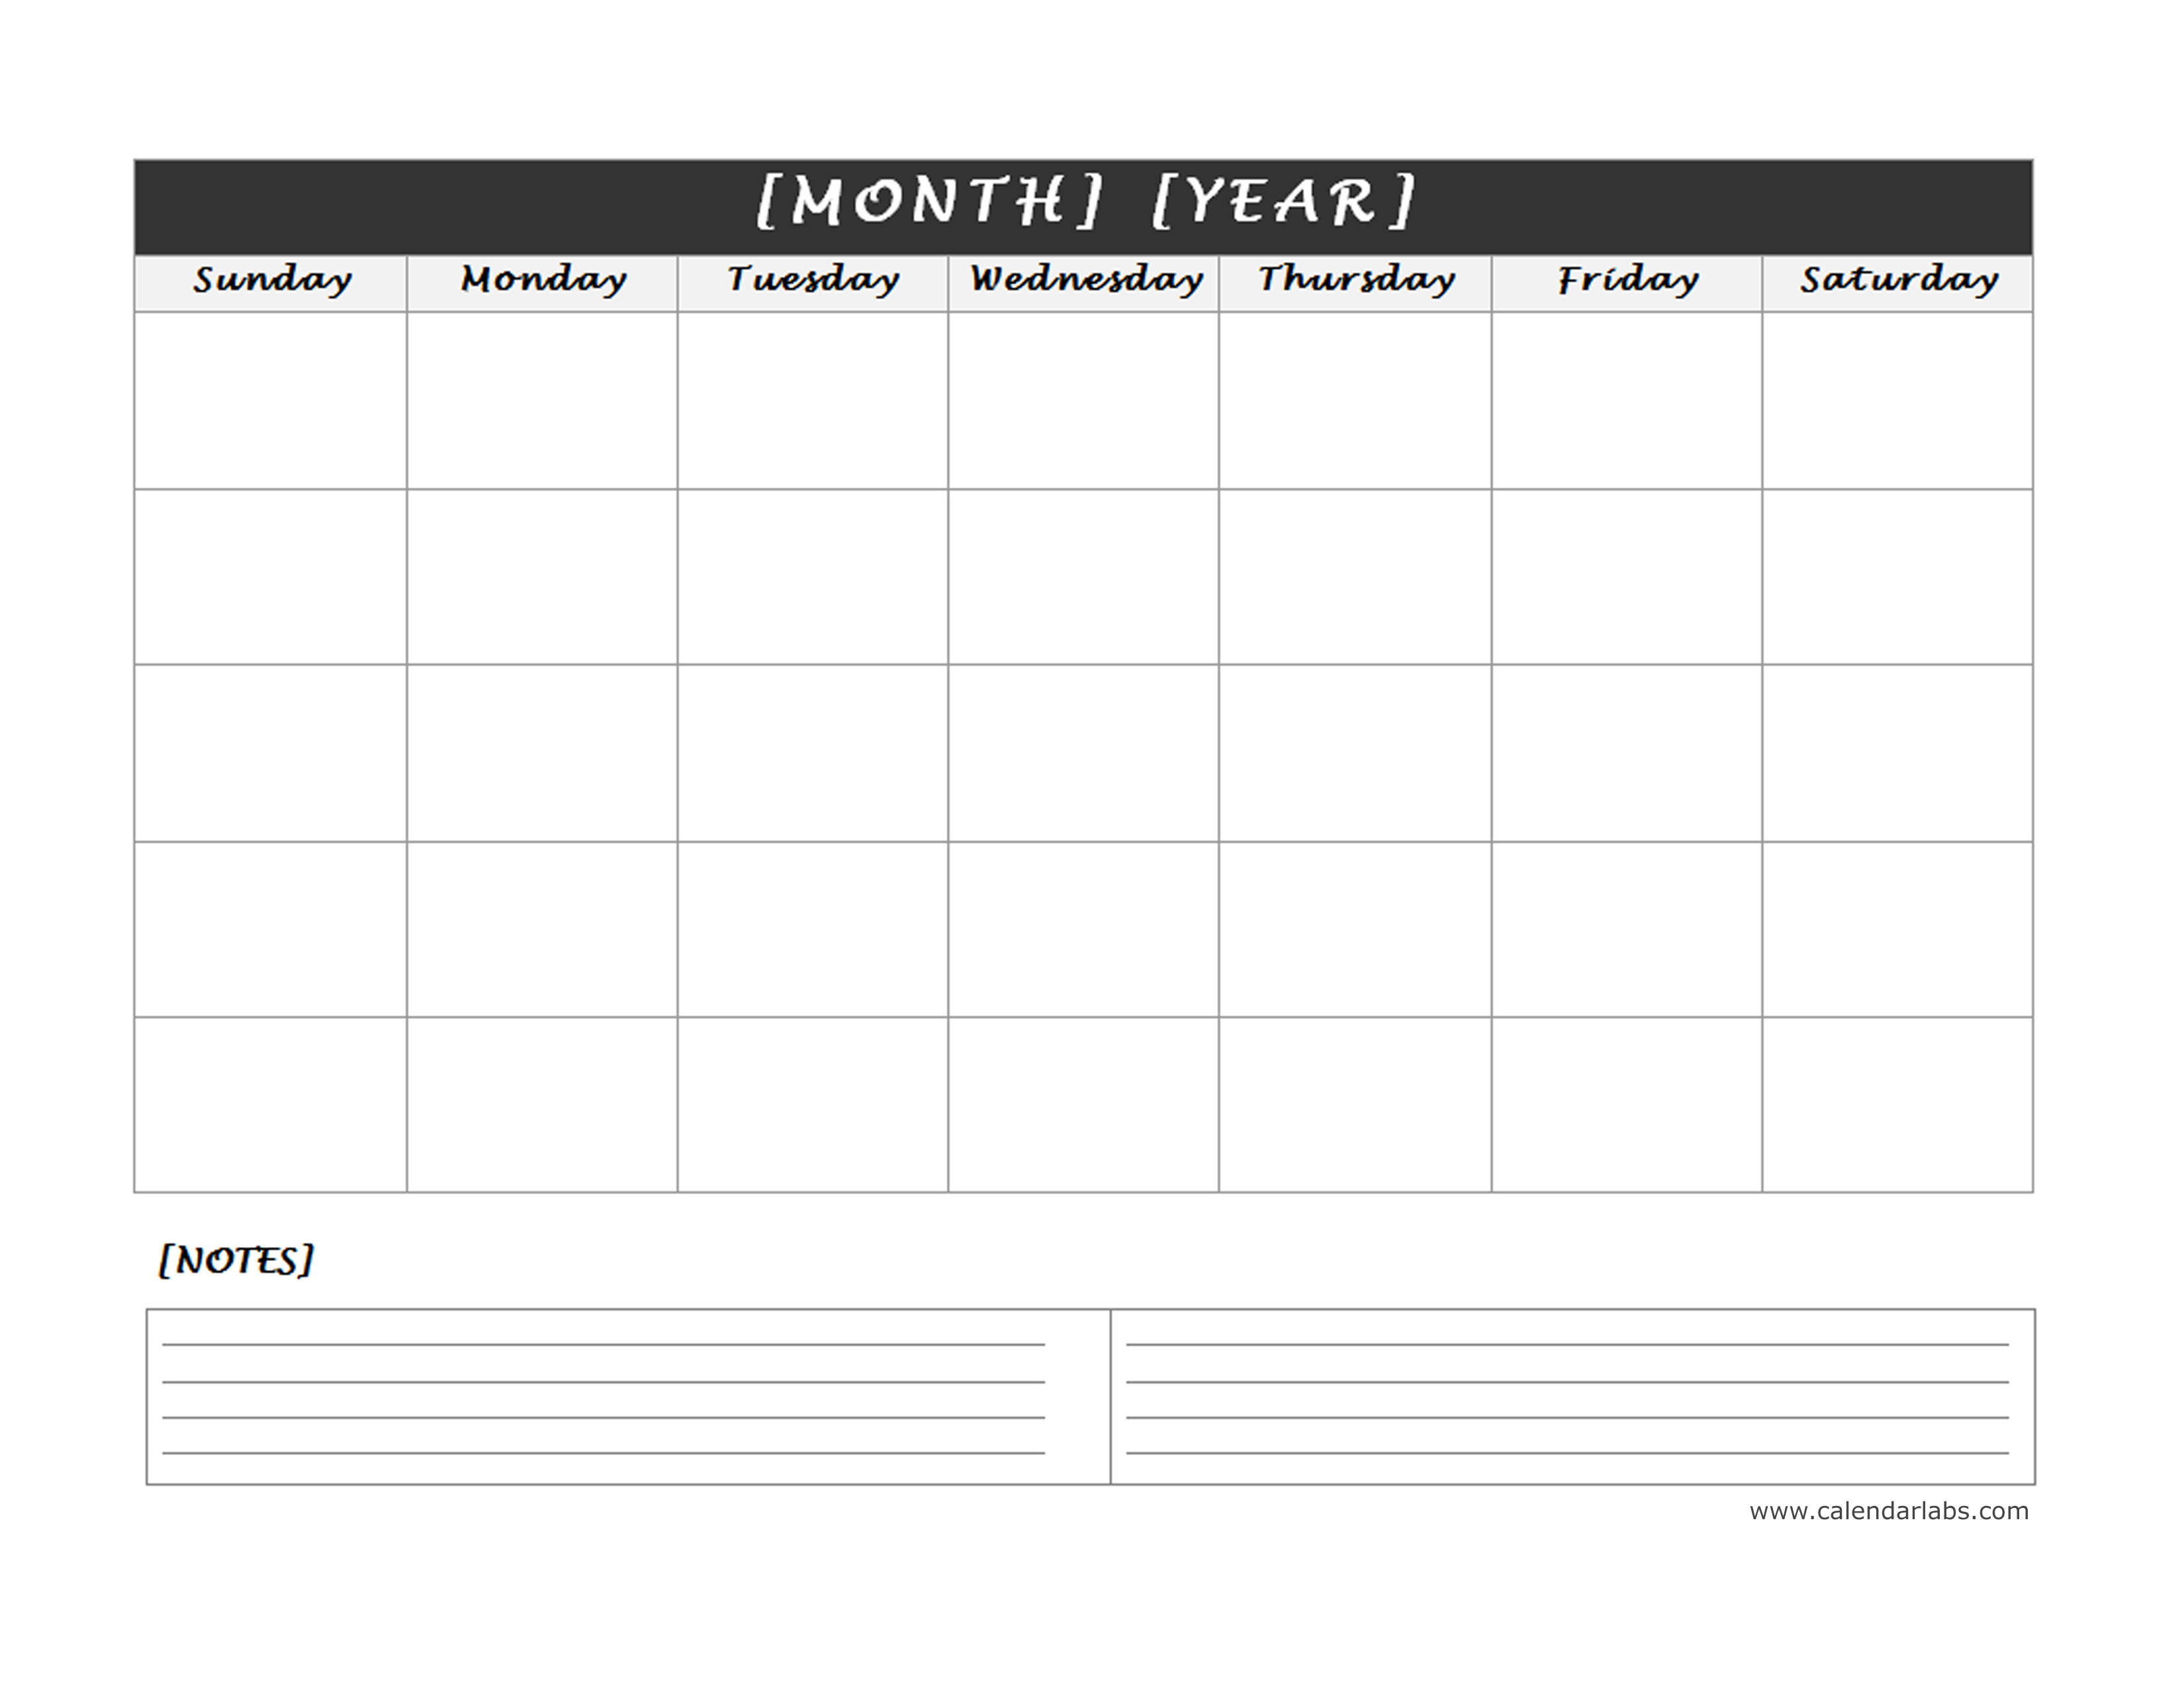 monthly blank calendar with notes spaces